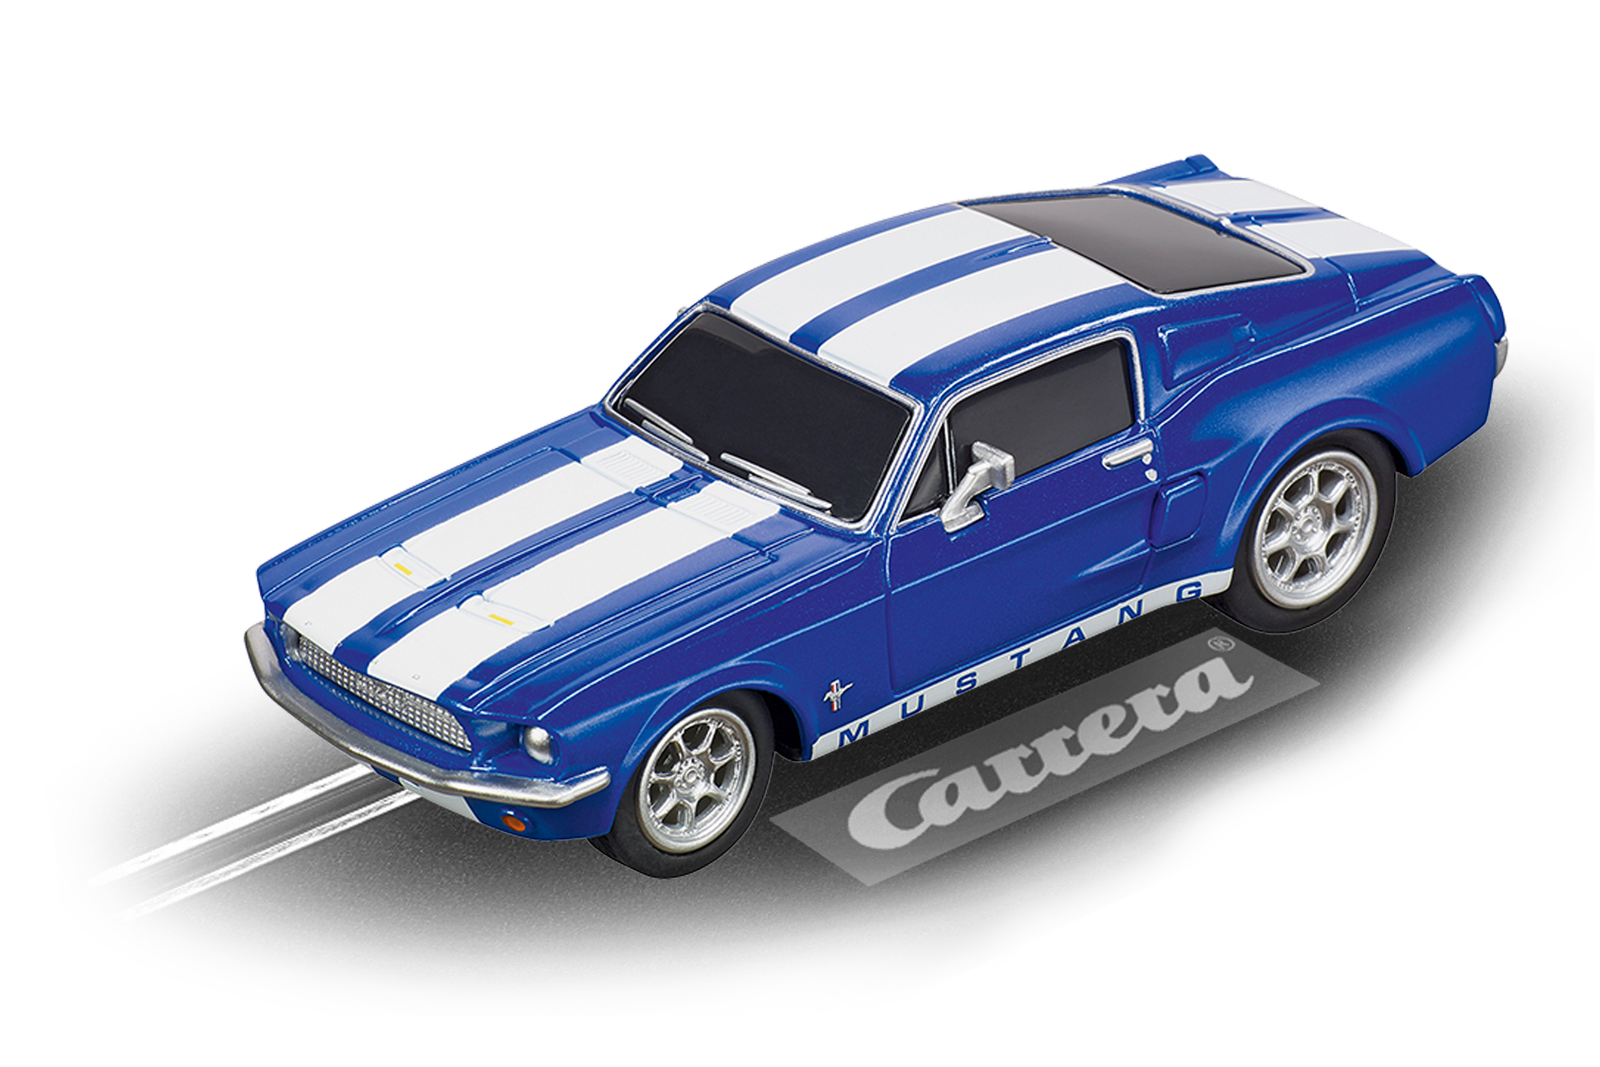 Carrera 64146 GO! Ford Mustang '67 Racing Blue